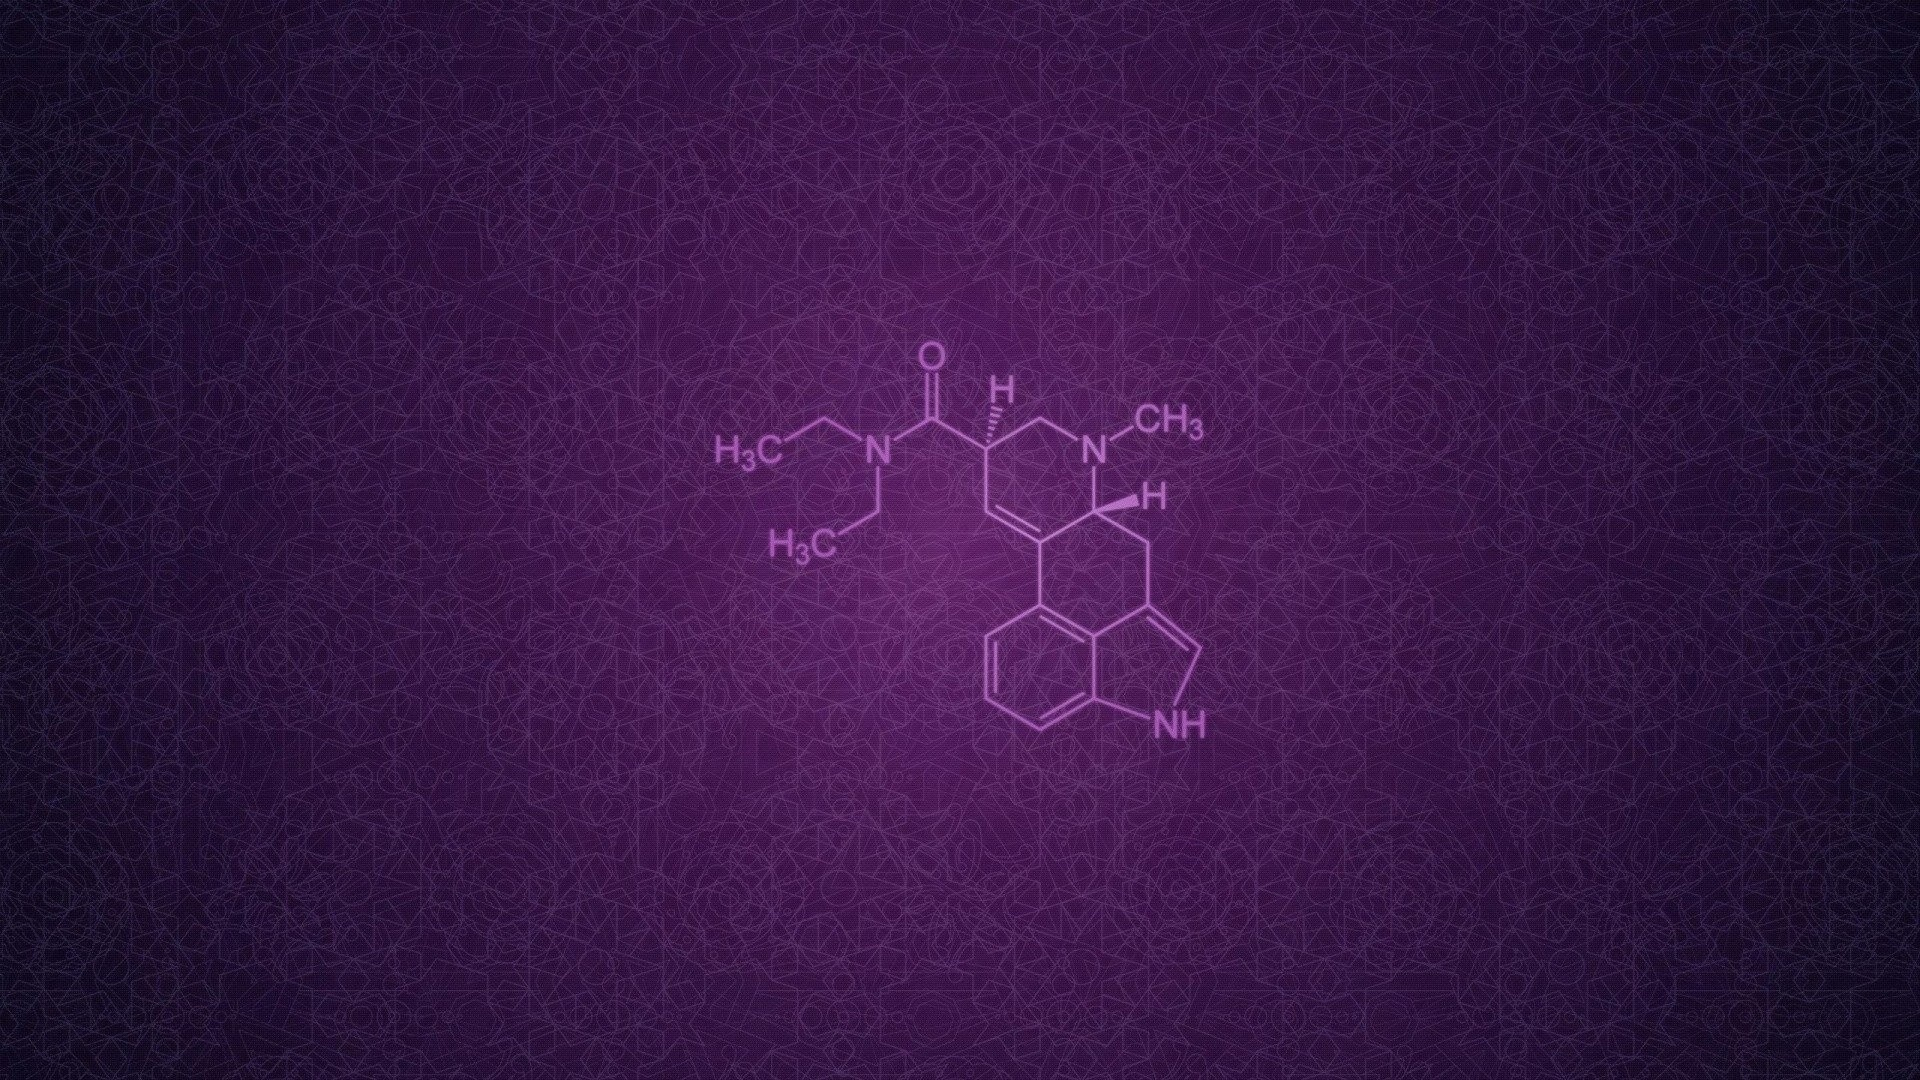 Chemistry HD Wallpaper